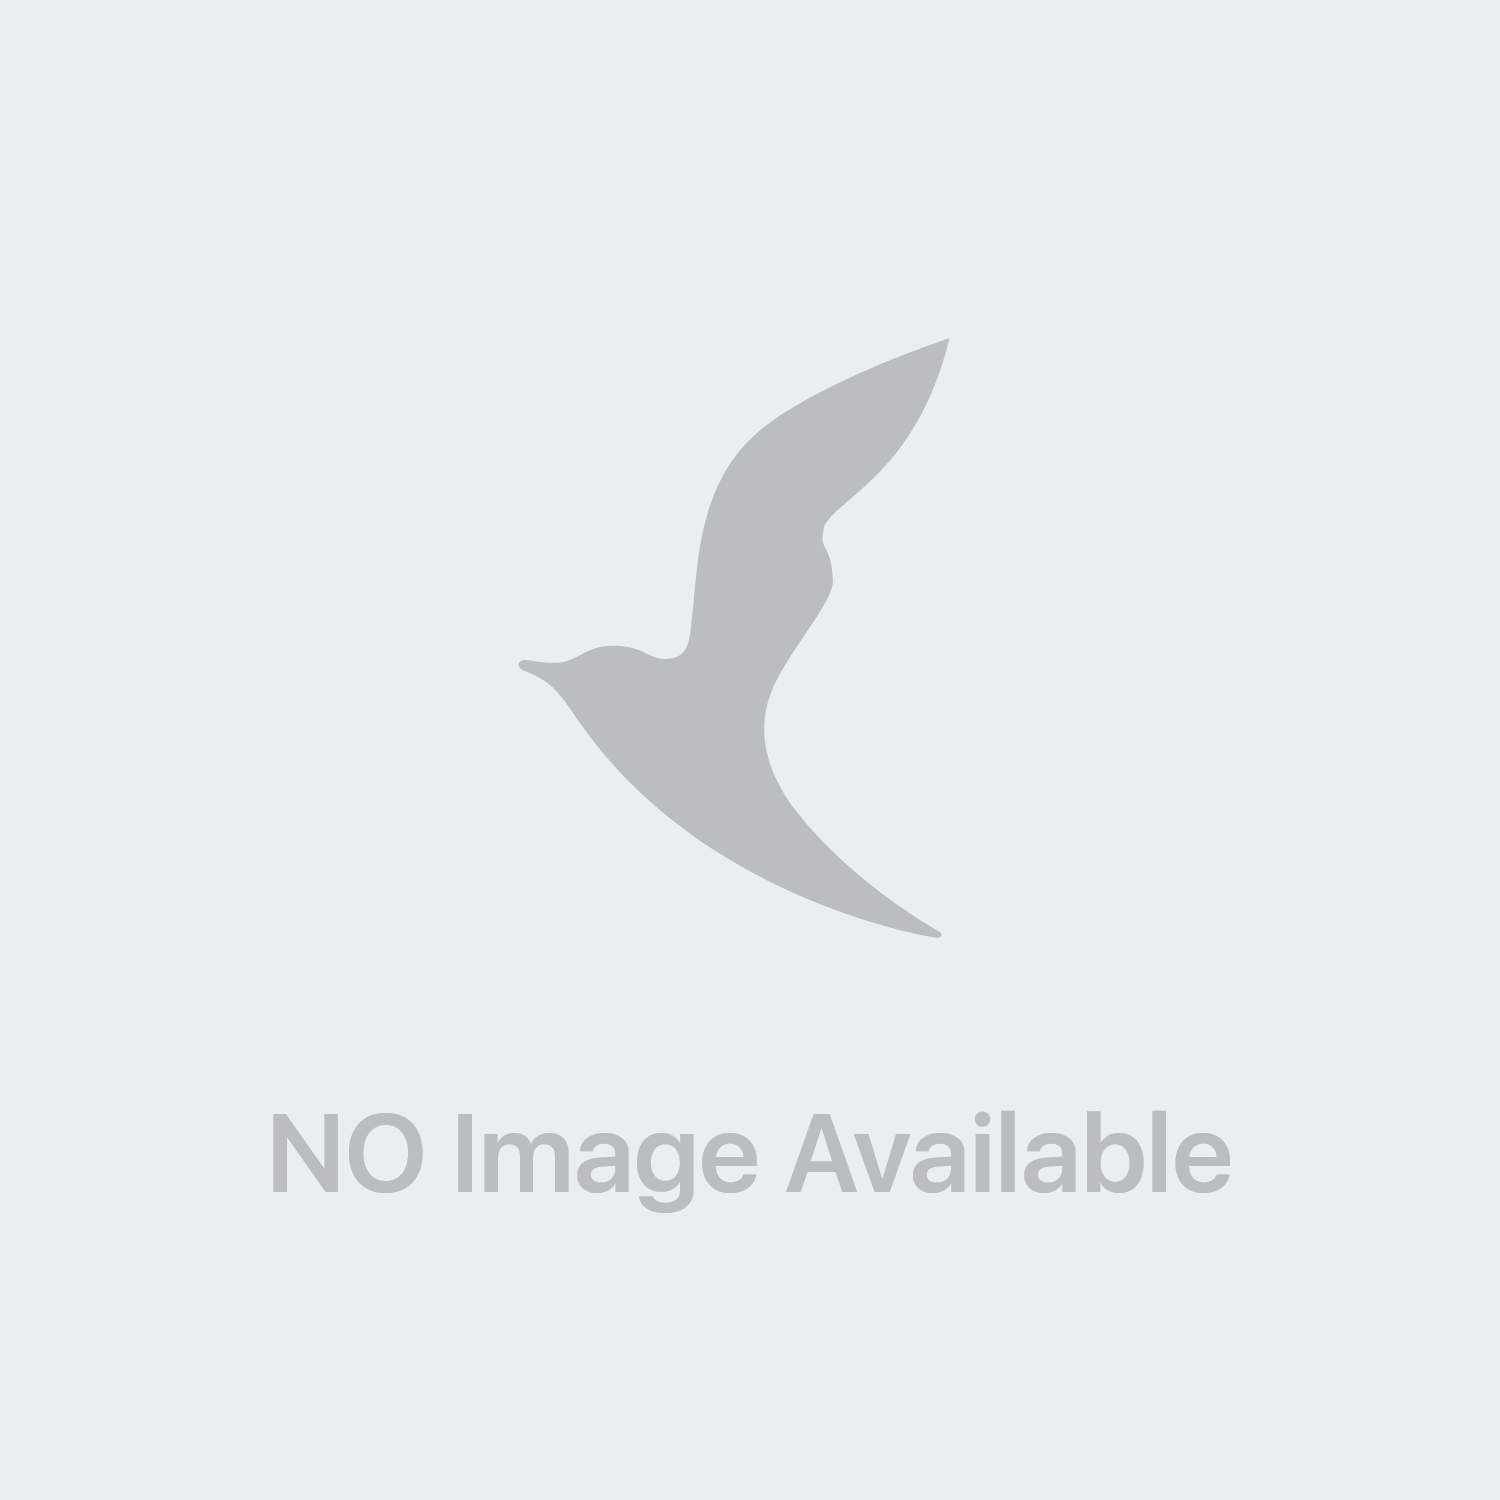 Efferalgan Bambini 300 mg Paracetamolo 10 Supposte